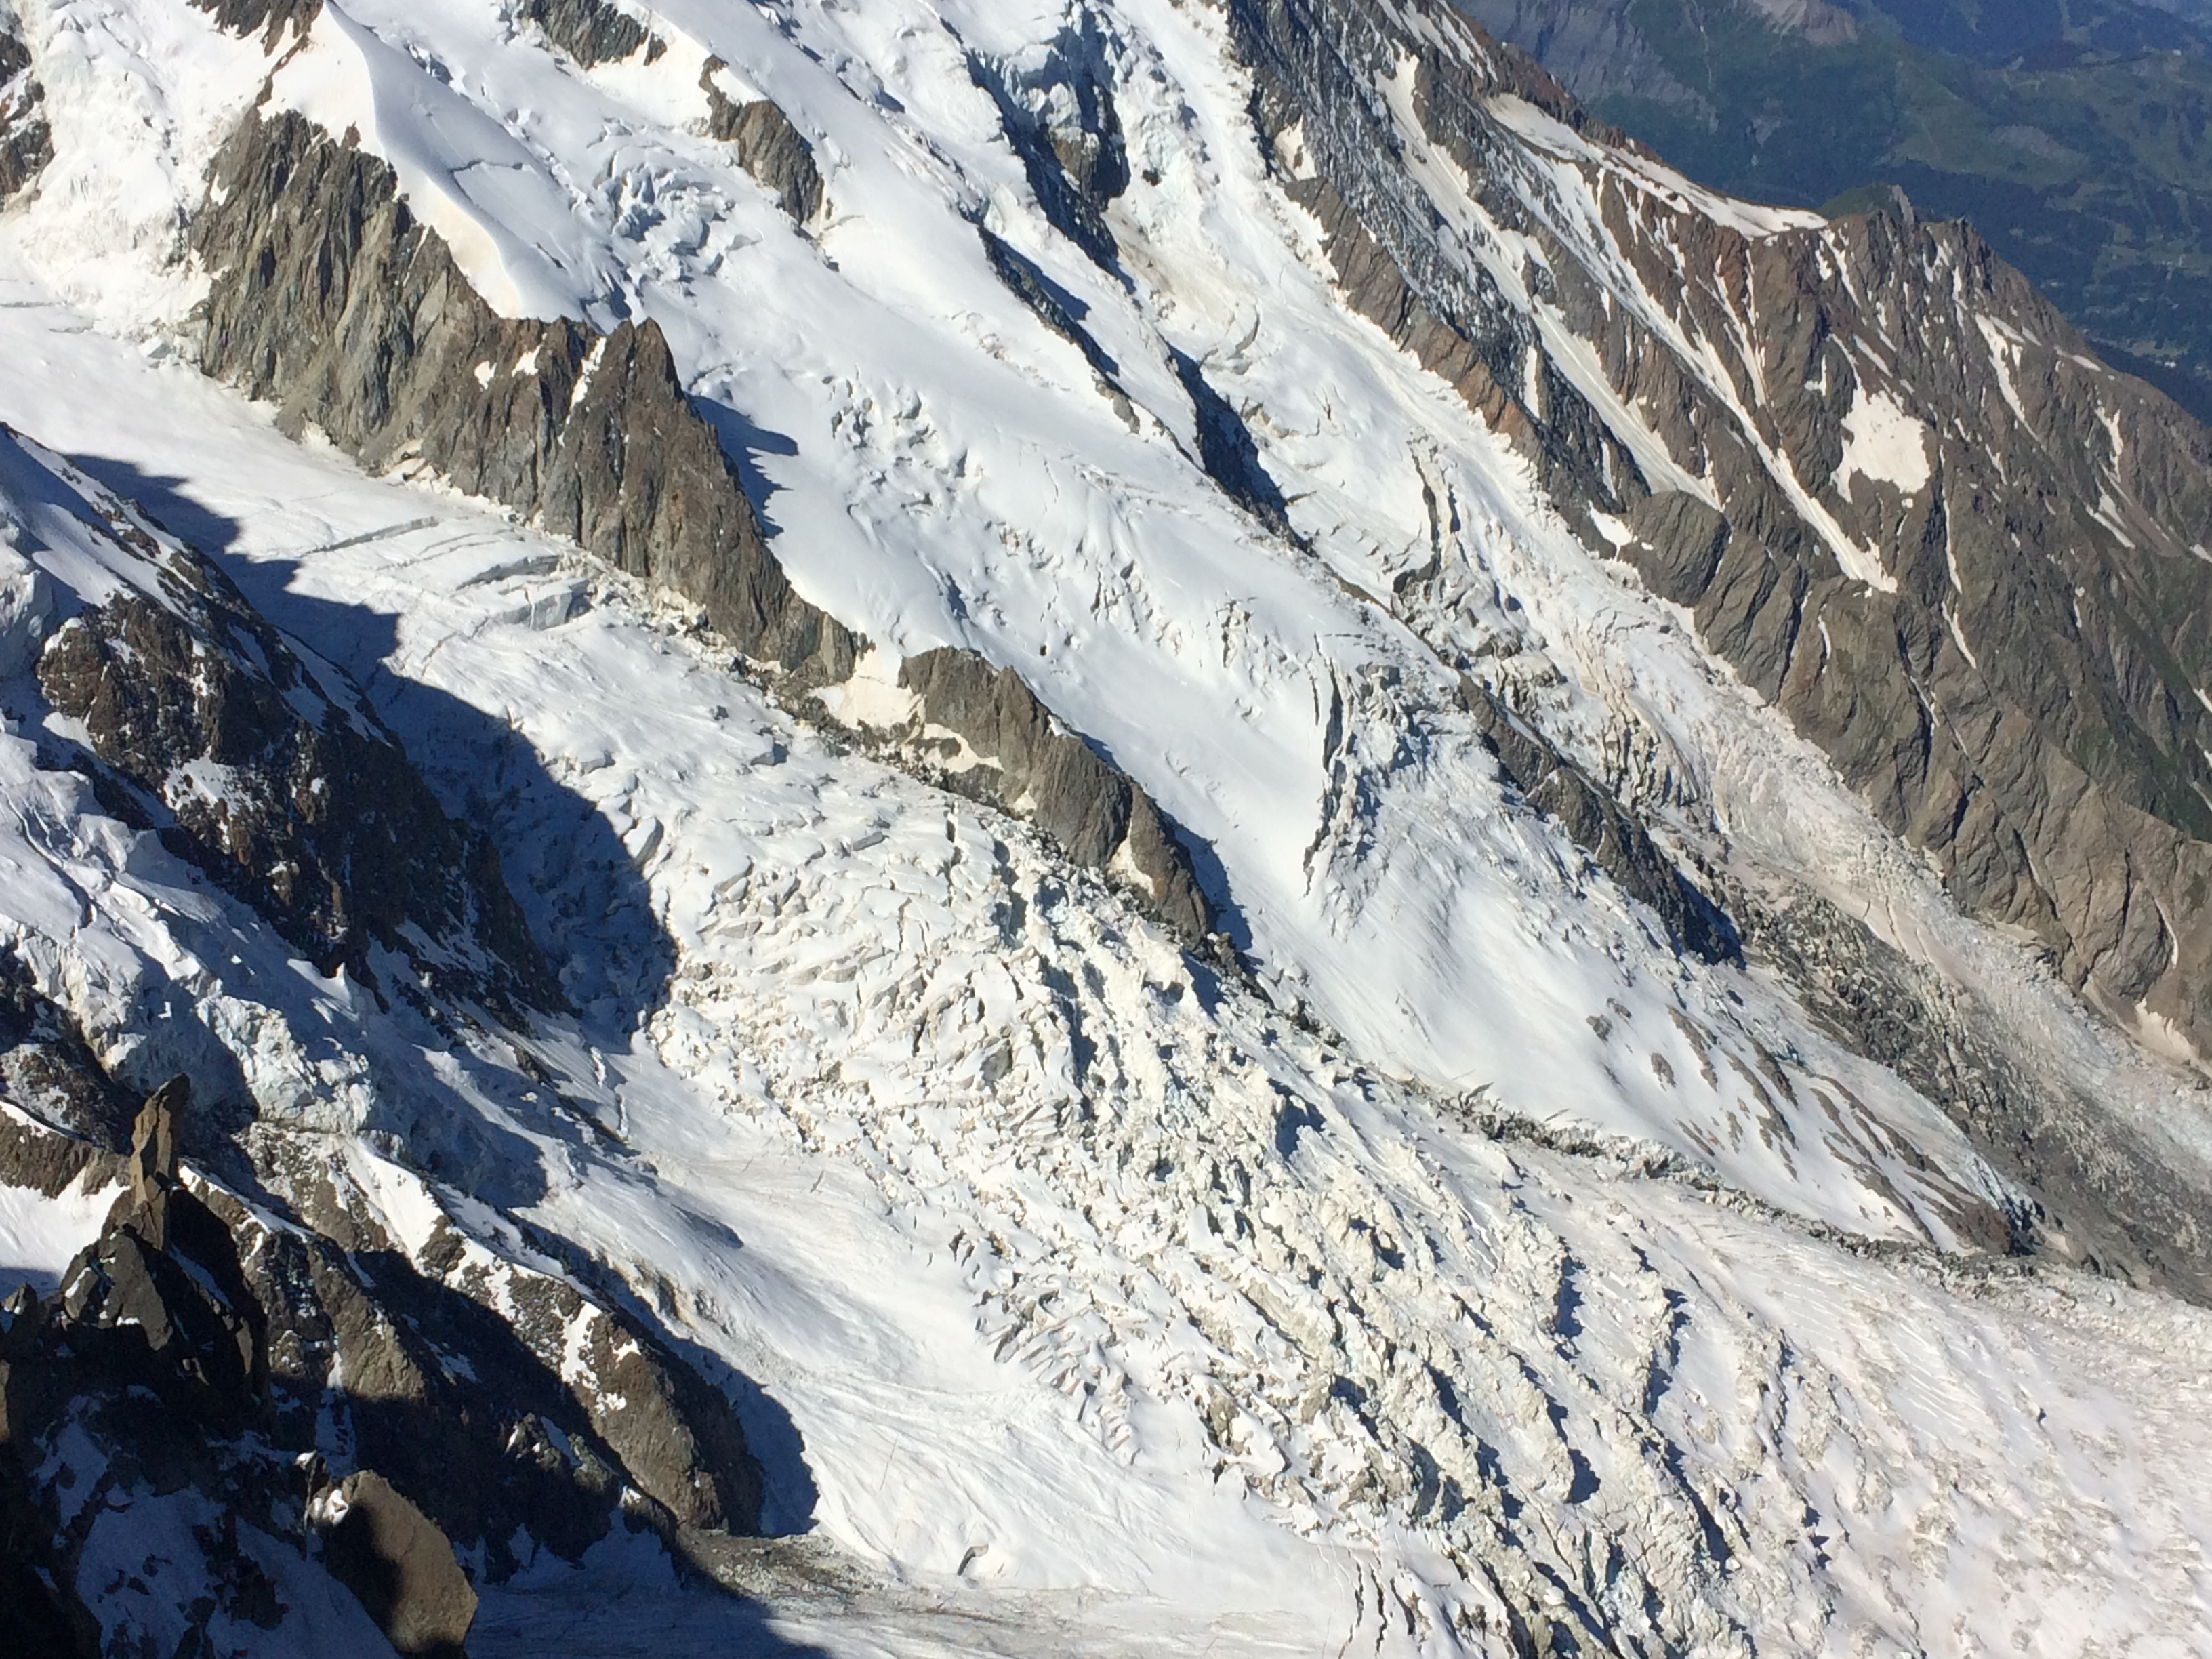 Learning how to suffer-less on a sufferfest as a mountain guide